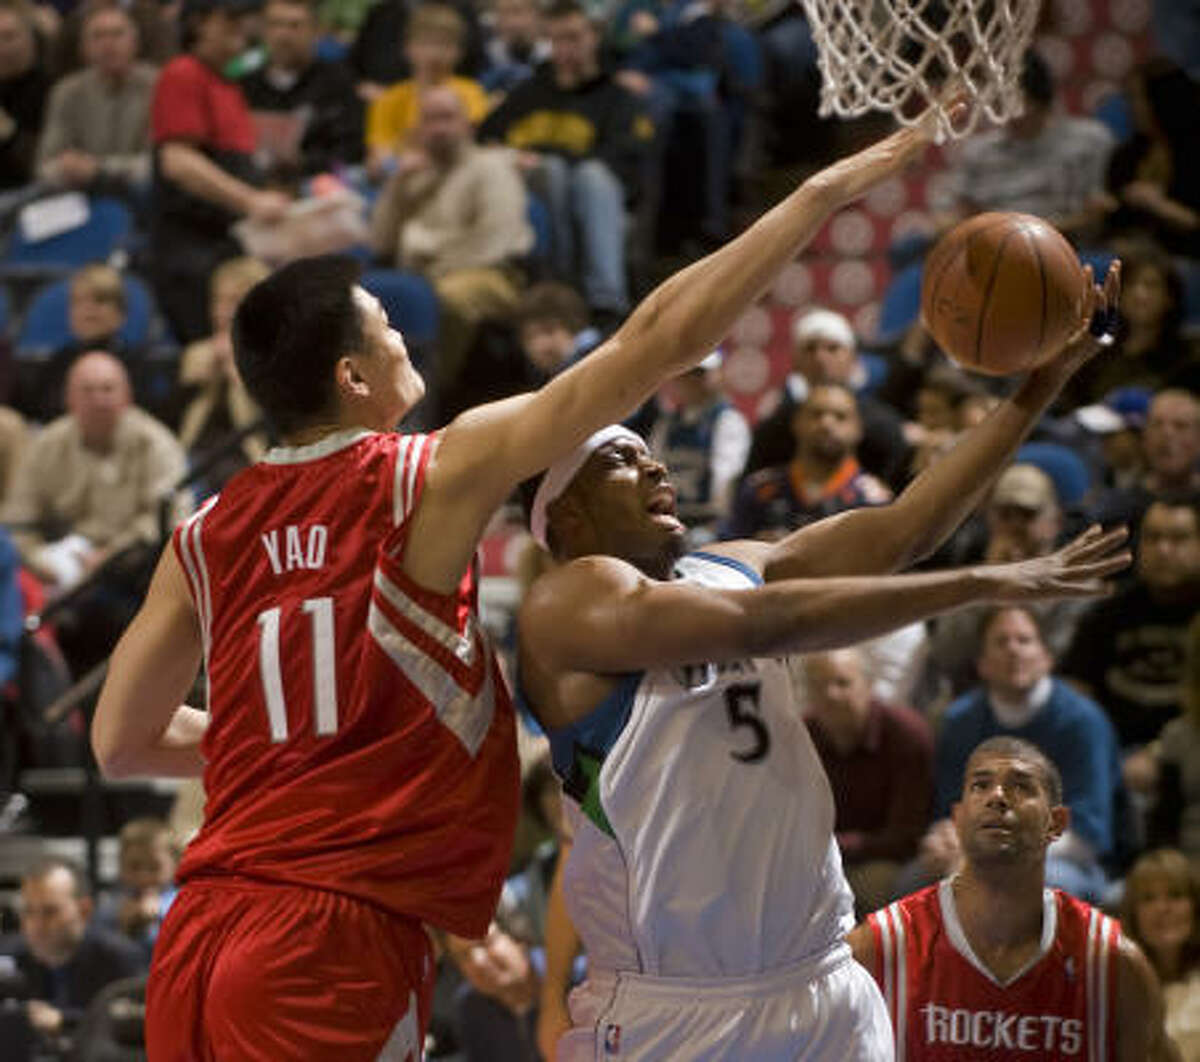 Yao Ming, left, blocks a shot under the basket by Minnesota's Craig Smith in the first quarter